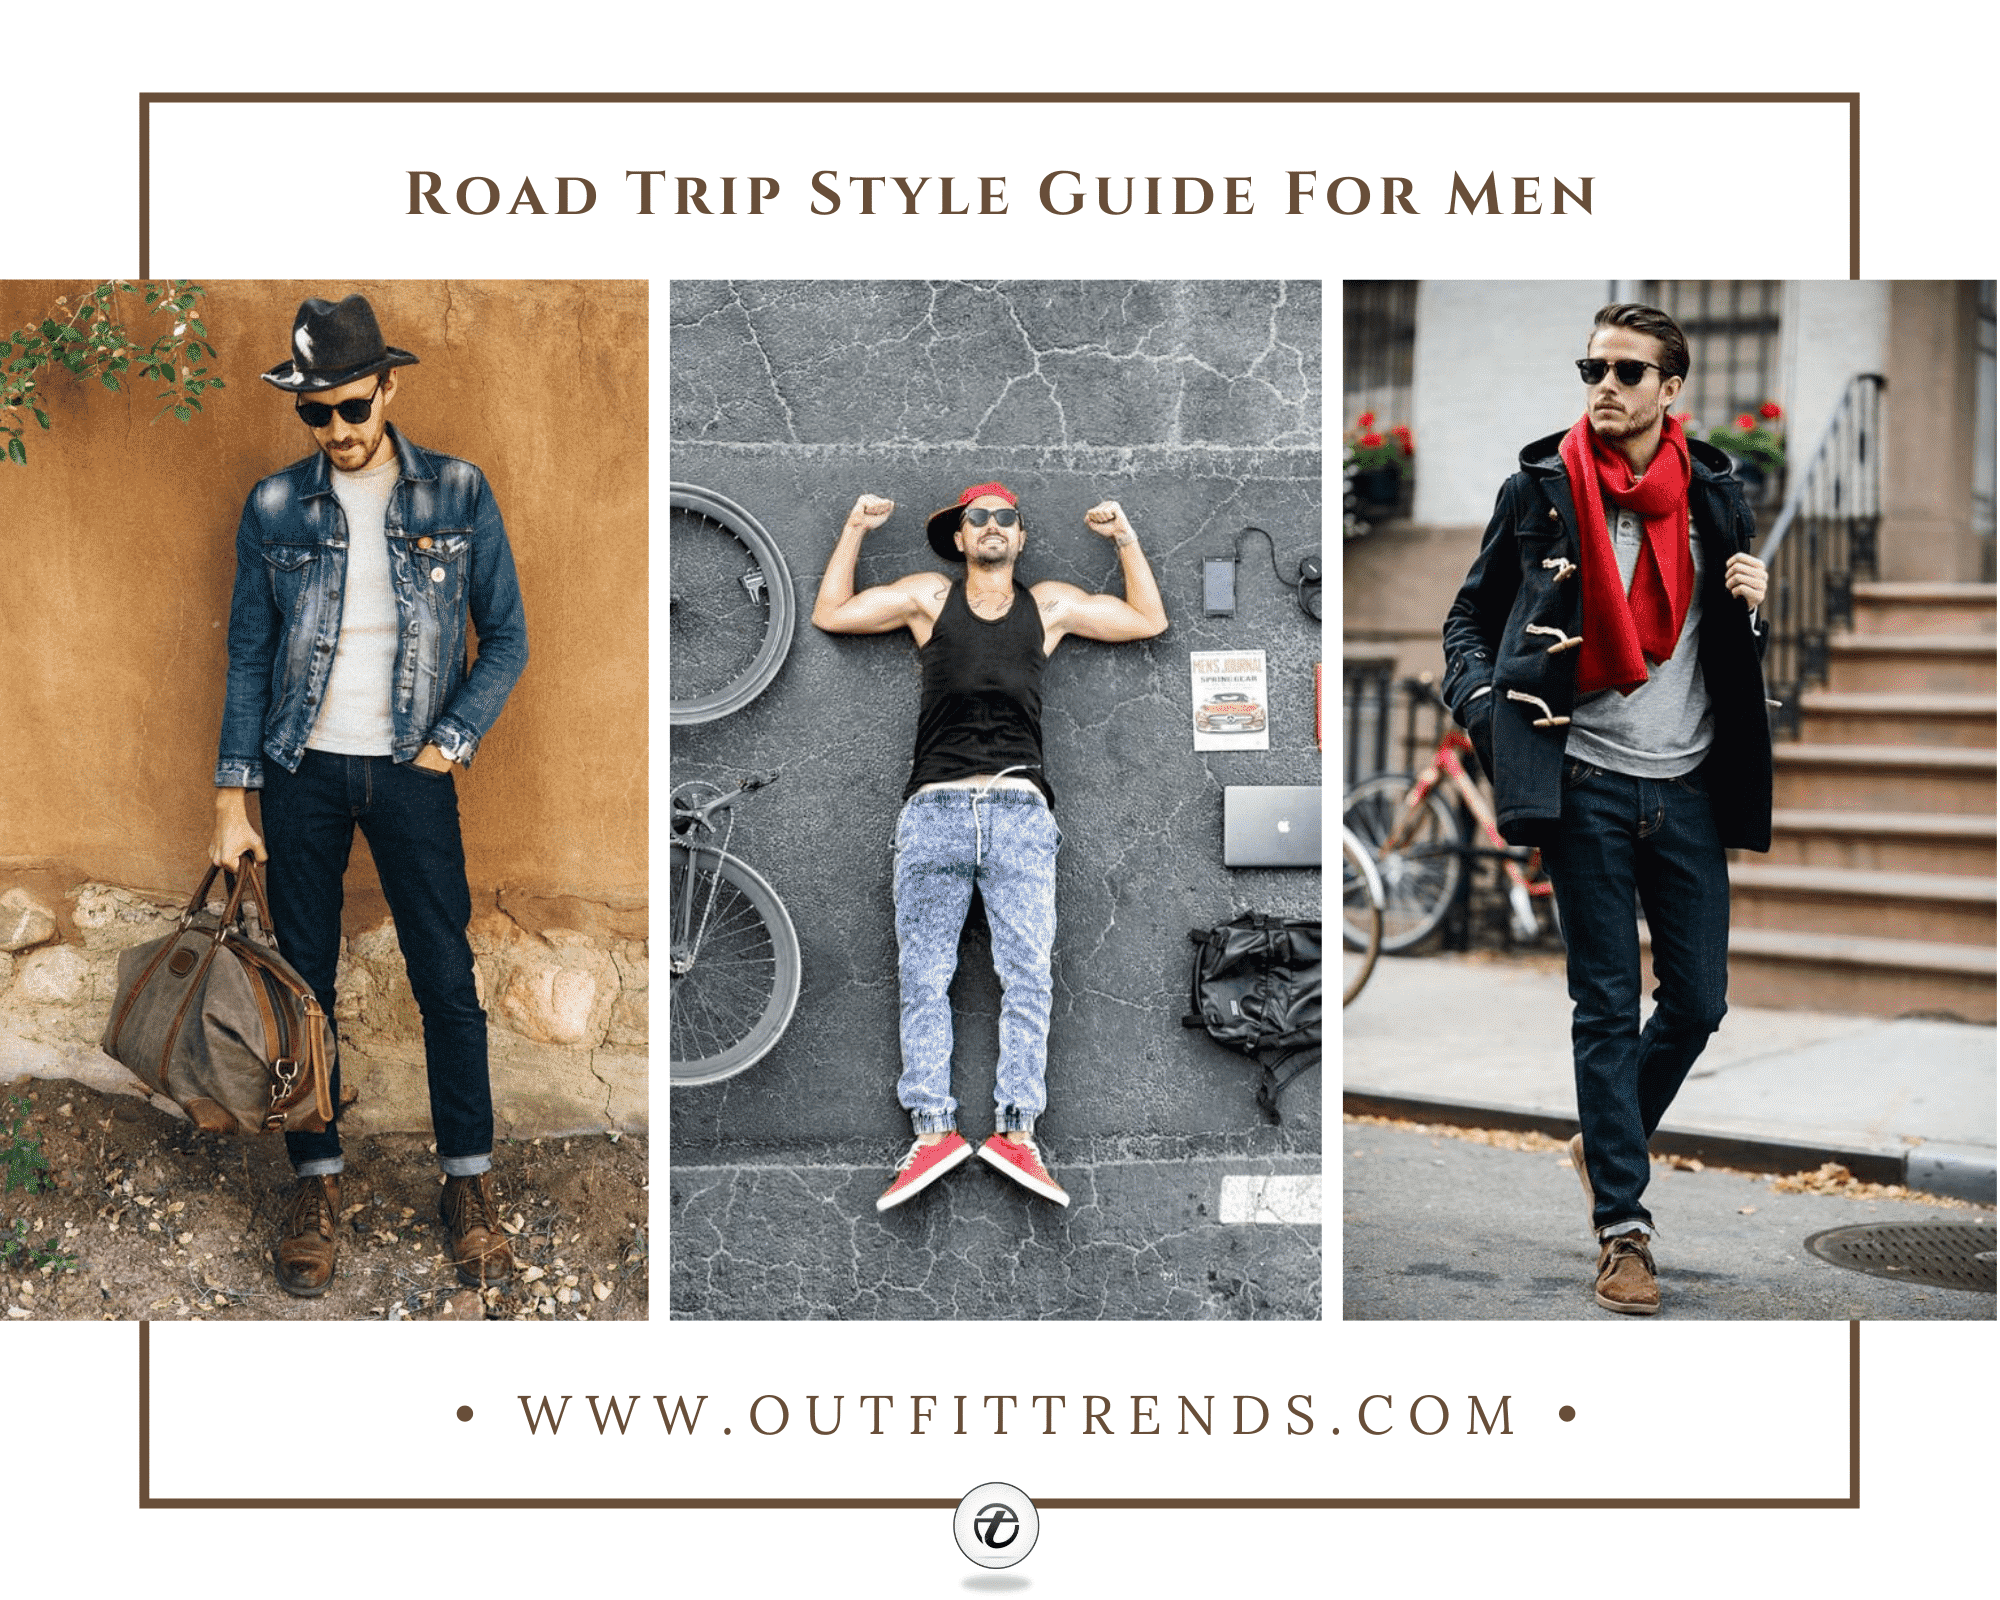 Men Road Trip Outfits29 Ideas on What to Wear for a Road Trip